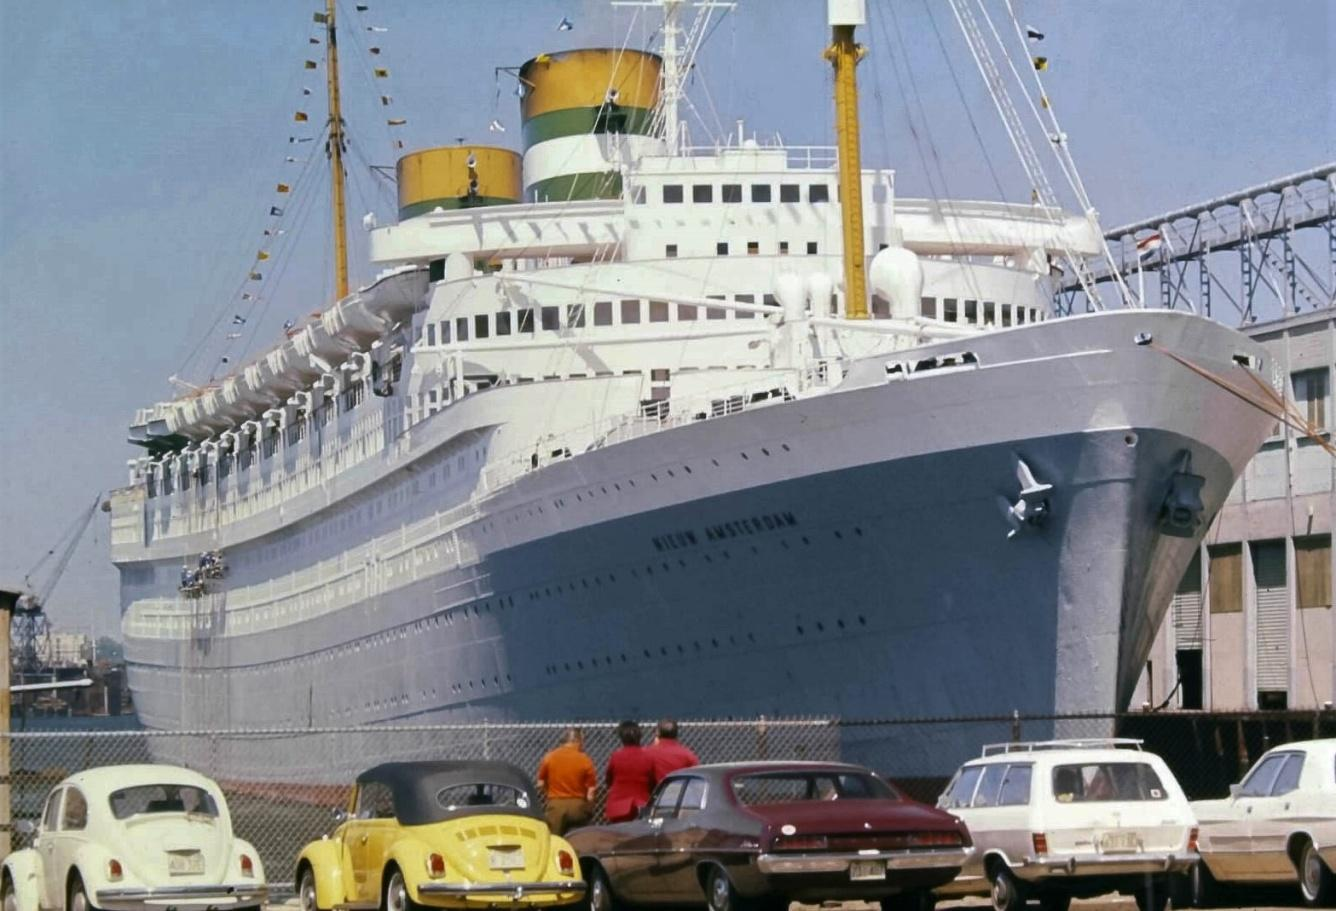 D:\Bill\Pictures\Tony110\Apr 05 2021\Ships Color Done\Nieuw Amsterdam docked Pier 40 NYC.jpg